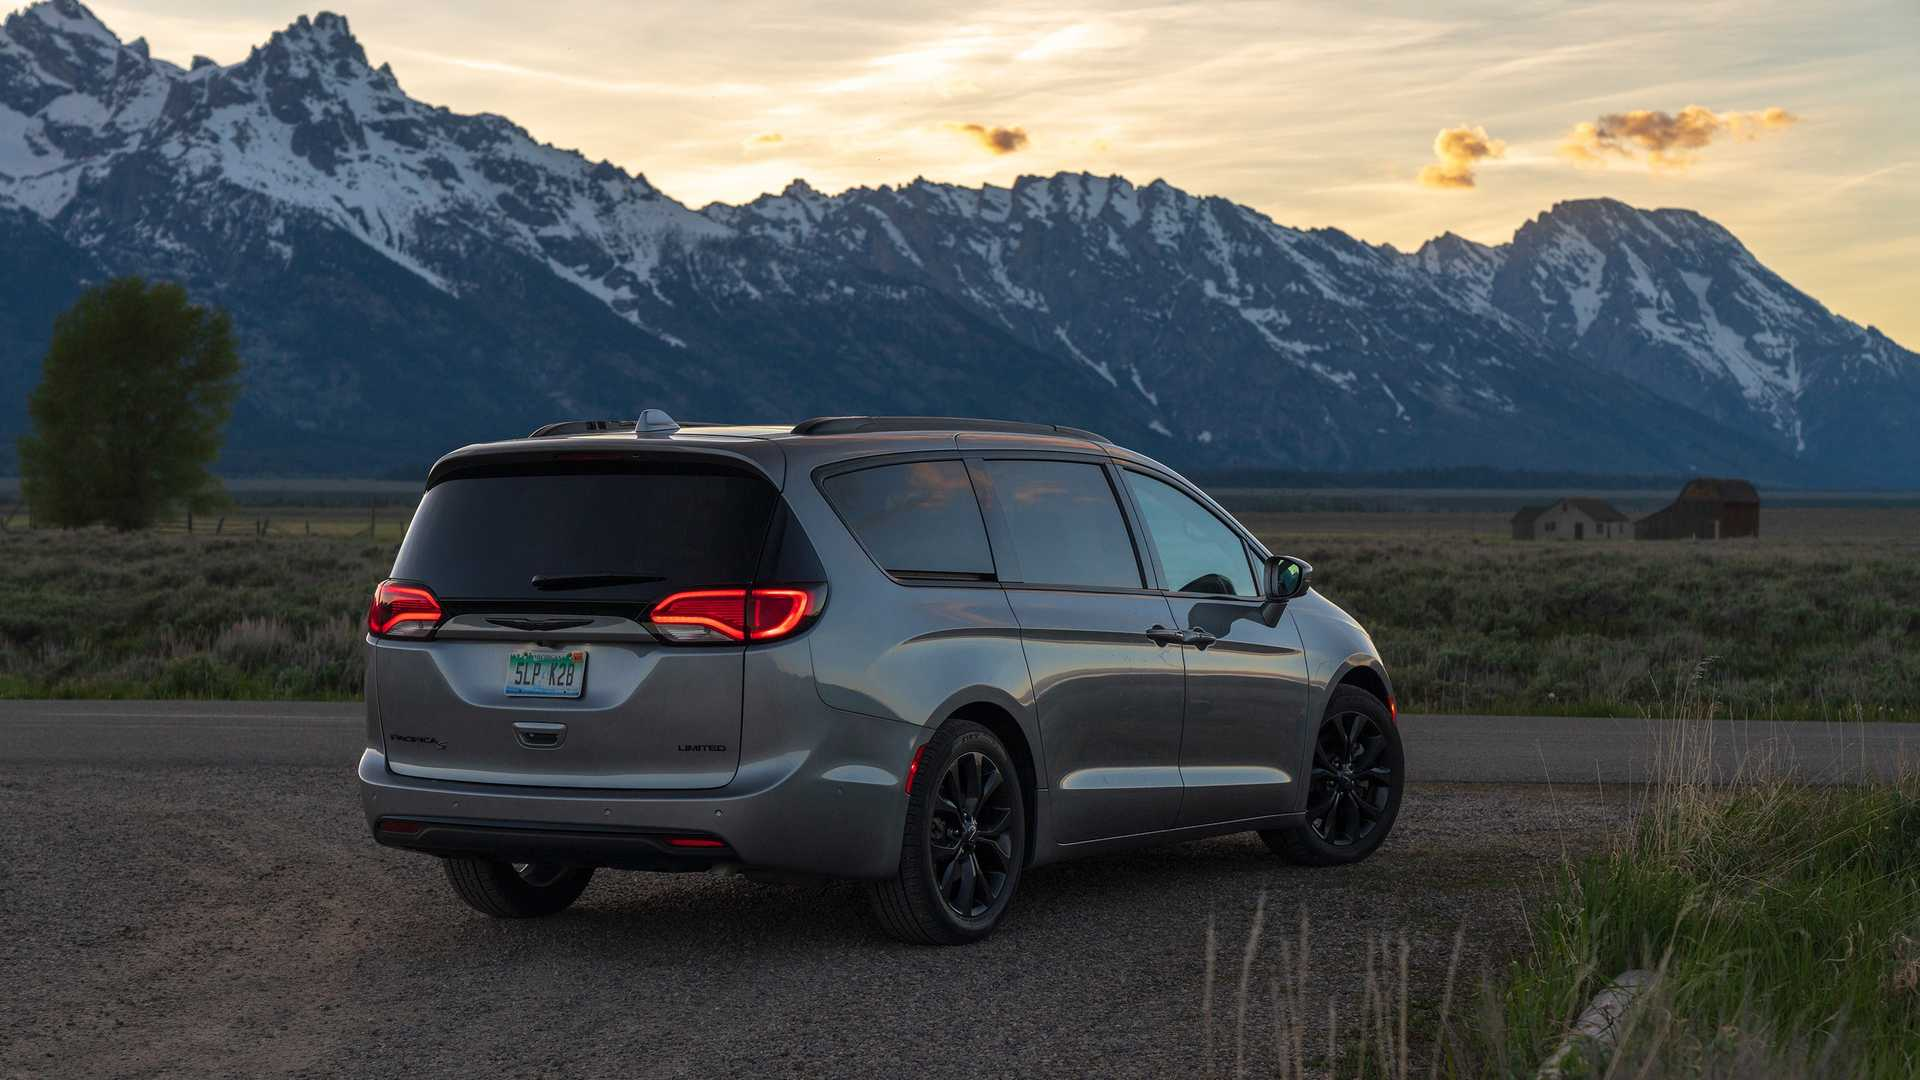 2020_Chrysler_Pacifica_Red_S_Edition_0015